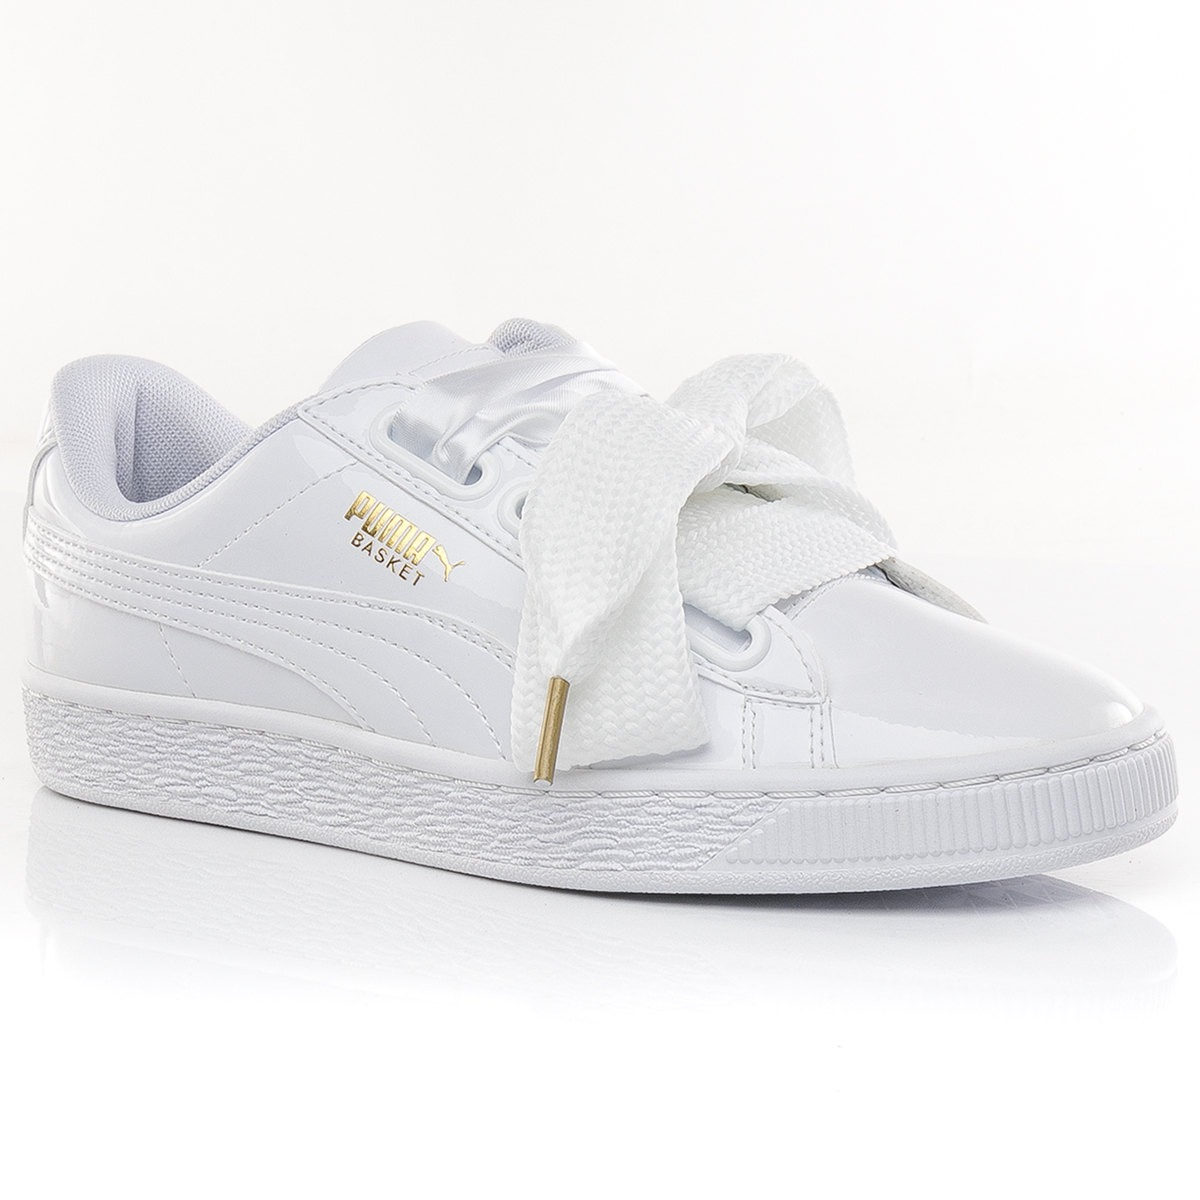 reputable site e537a 30b87 Zapatillas Basket Heart Patent White Puma